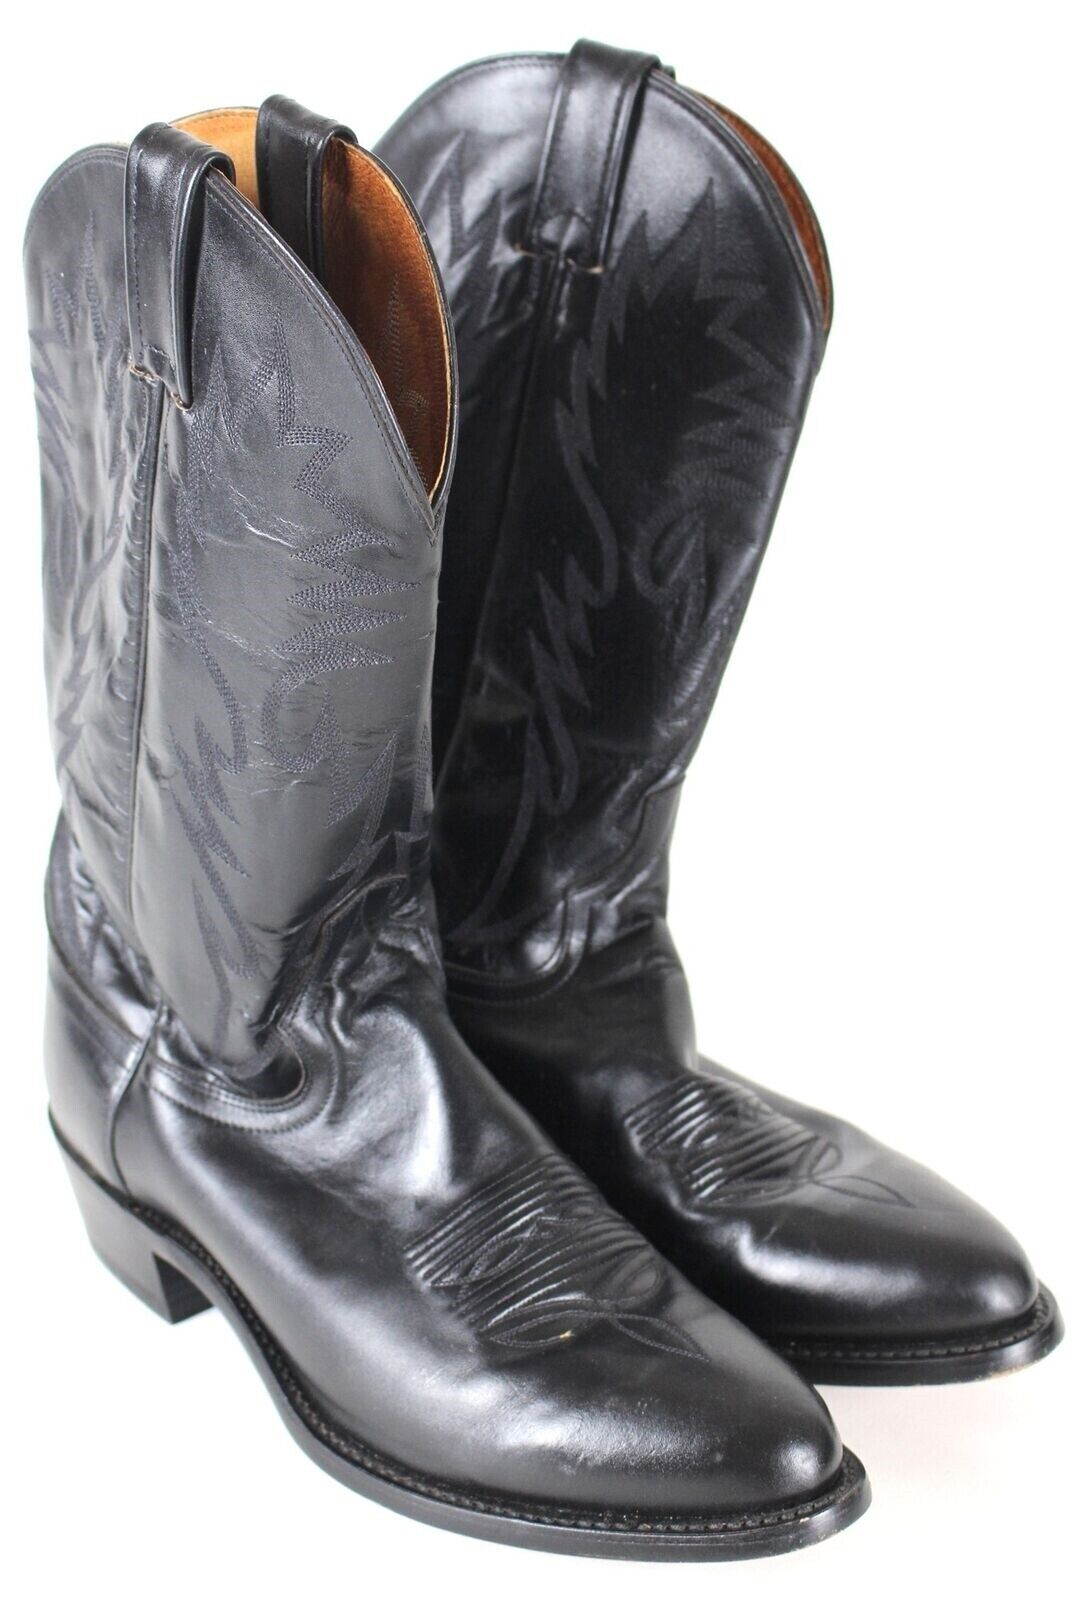 Dan Post Black Leather Cowboy Boots MENS 10 D Western Pull On